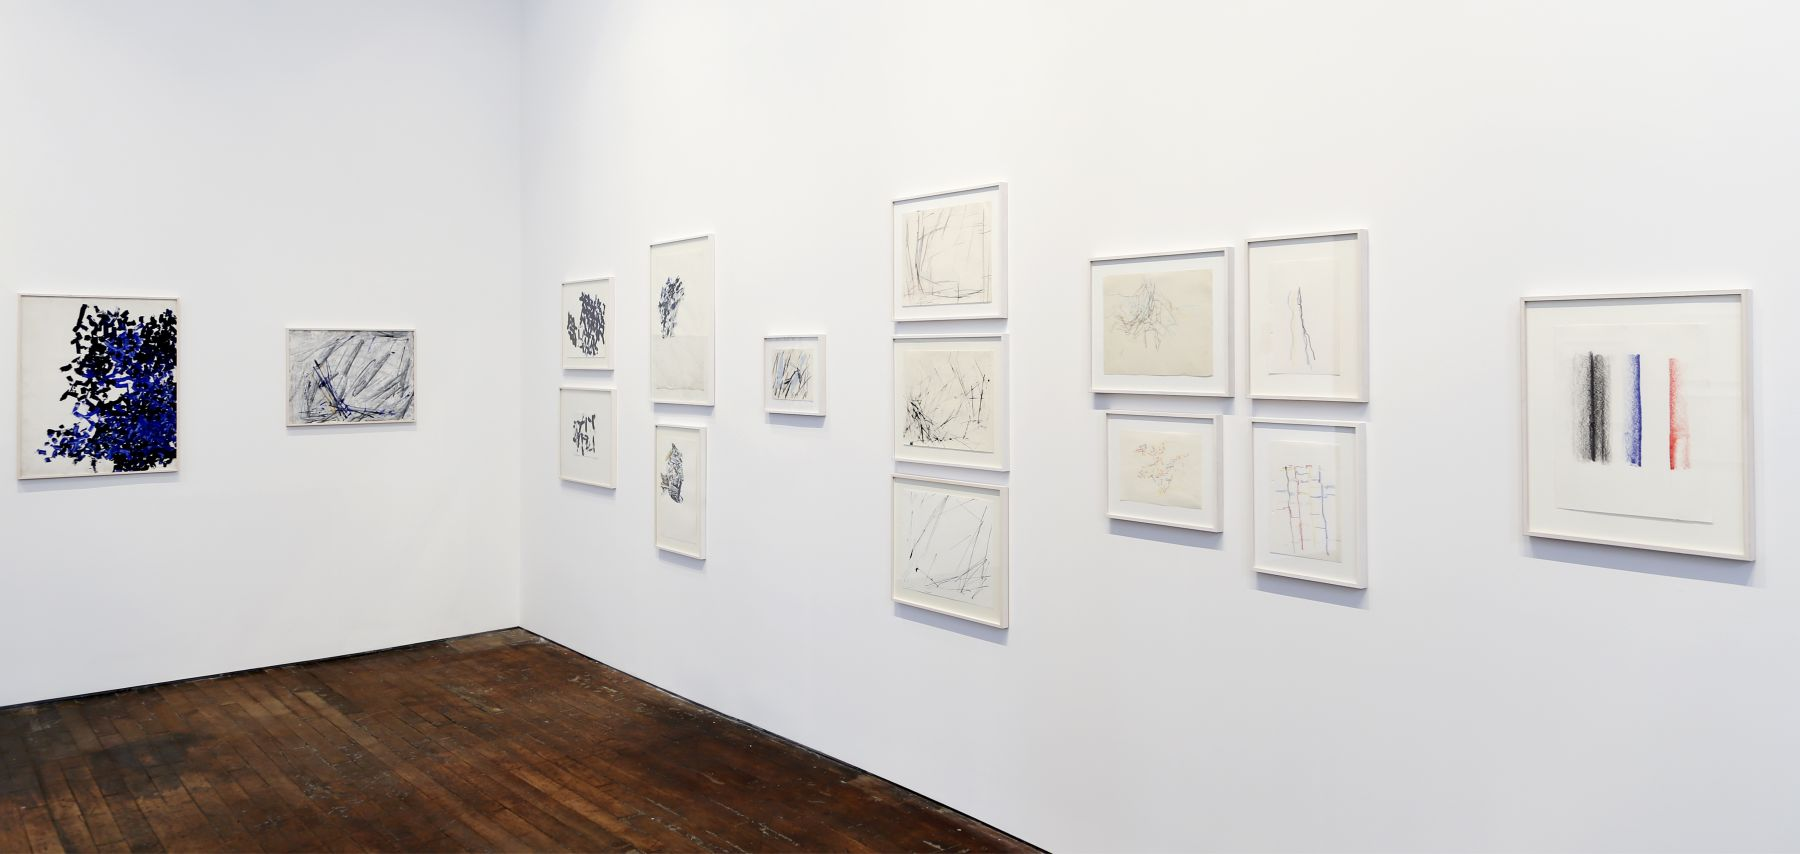 Charlotte Posenenske: Early Works – installation view 4